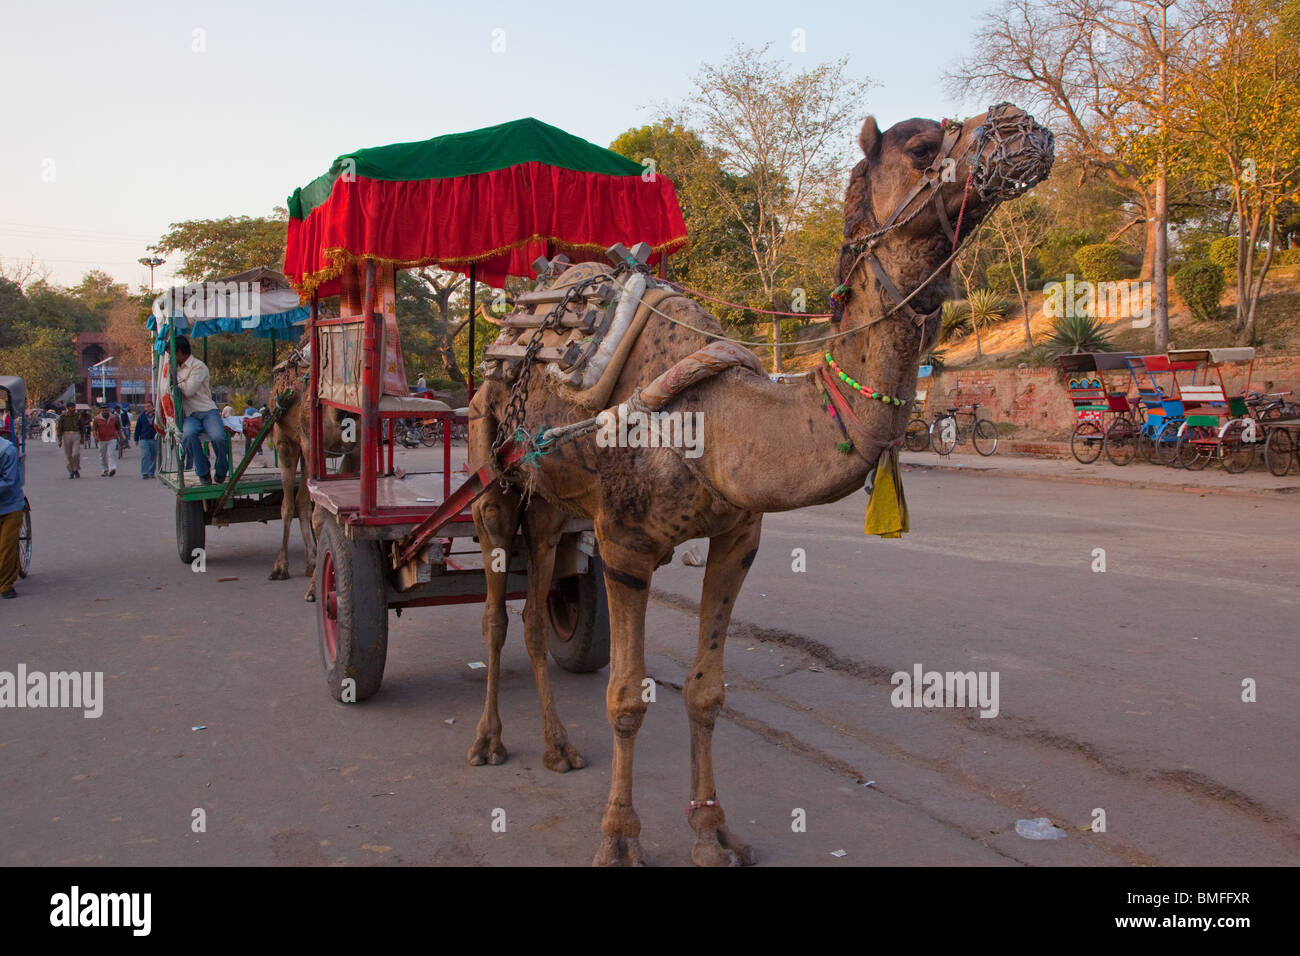 Camel Pulling a Passenger Cart, Agra, India - Stock Image